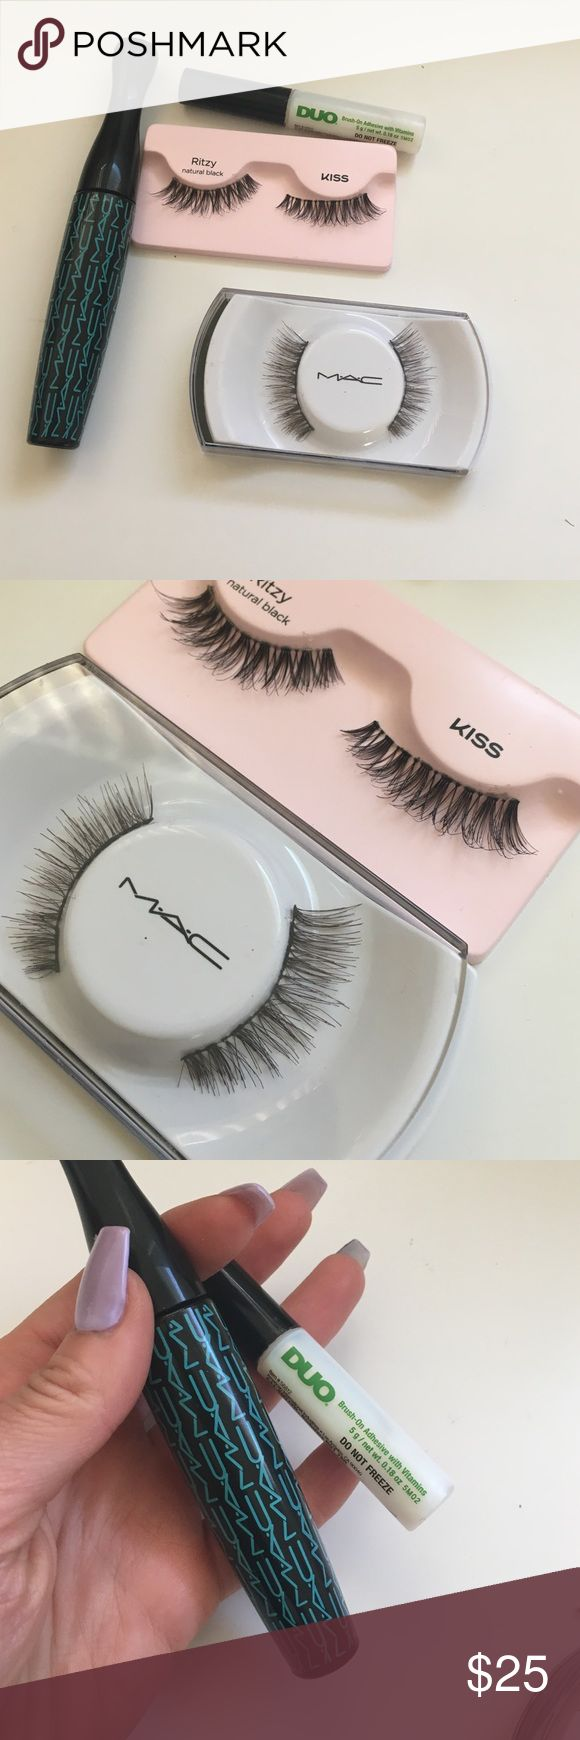 Eyelash Bundle 👁 MAC Falsies in A56 and Kiss Falsies in Ritzy. I wore both pairs once. MAC mascara in A26. And duo eyelash glue i bought from Target, lots of glue left. Good condition!! MAC Cosmetics Makeup False Eyelashes